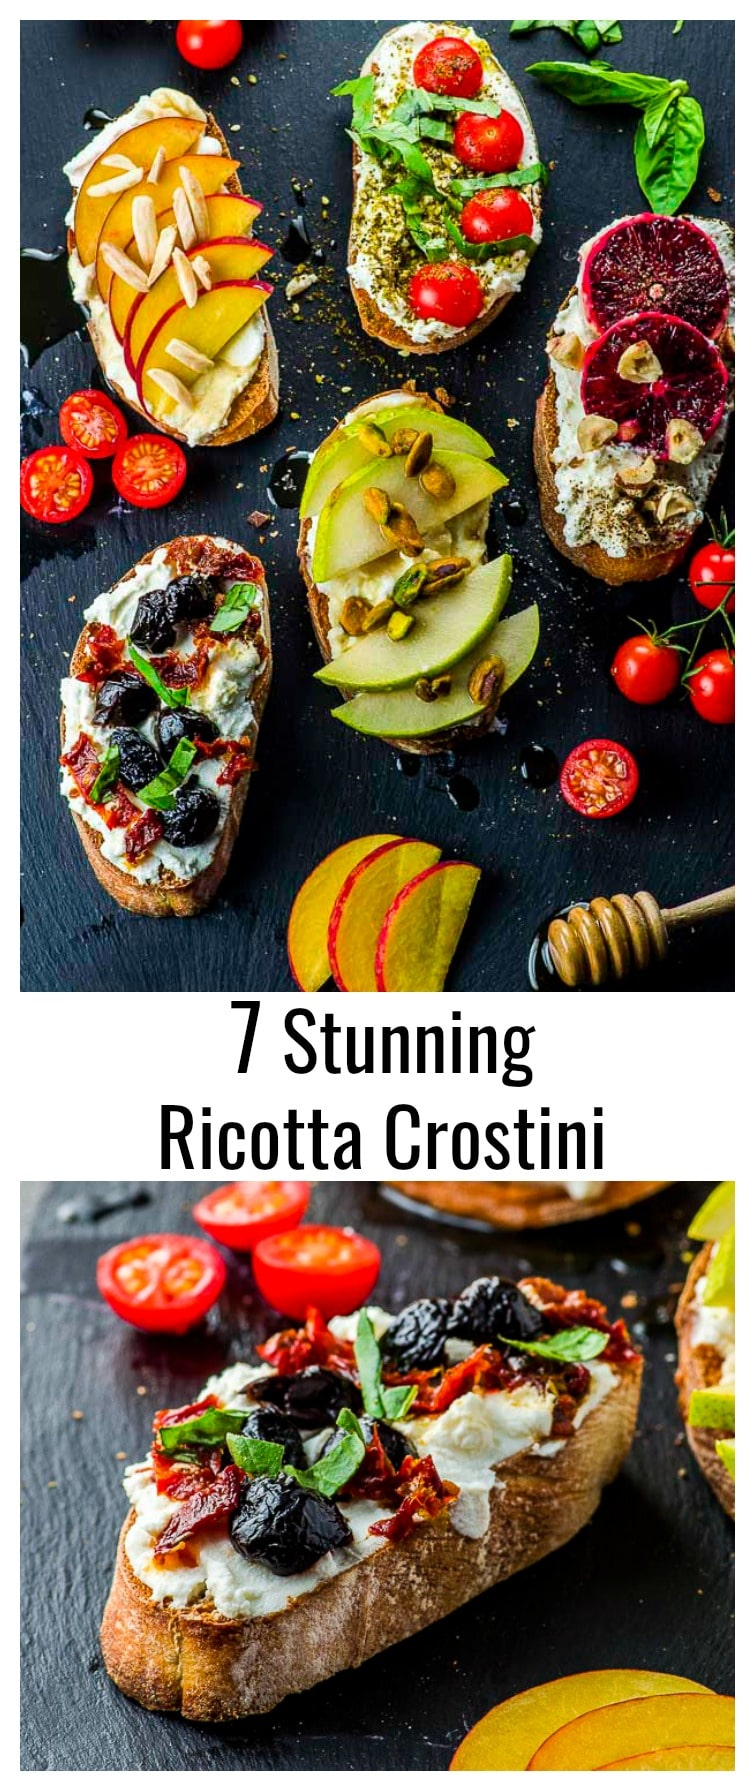 Our Ricotta Crostini Recipe is a great example of how decadent a humble slice of bread with good ricotta cheese can be! #crostini #vegetarian #breakfast #Appetizer #summer #ricotta